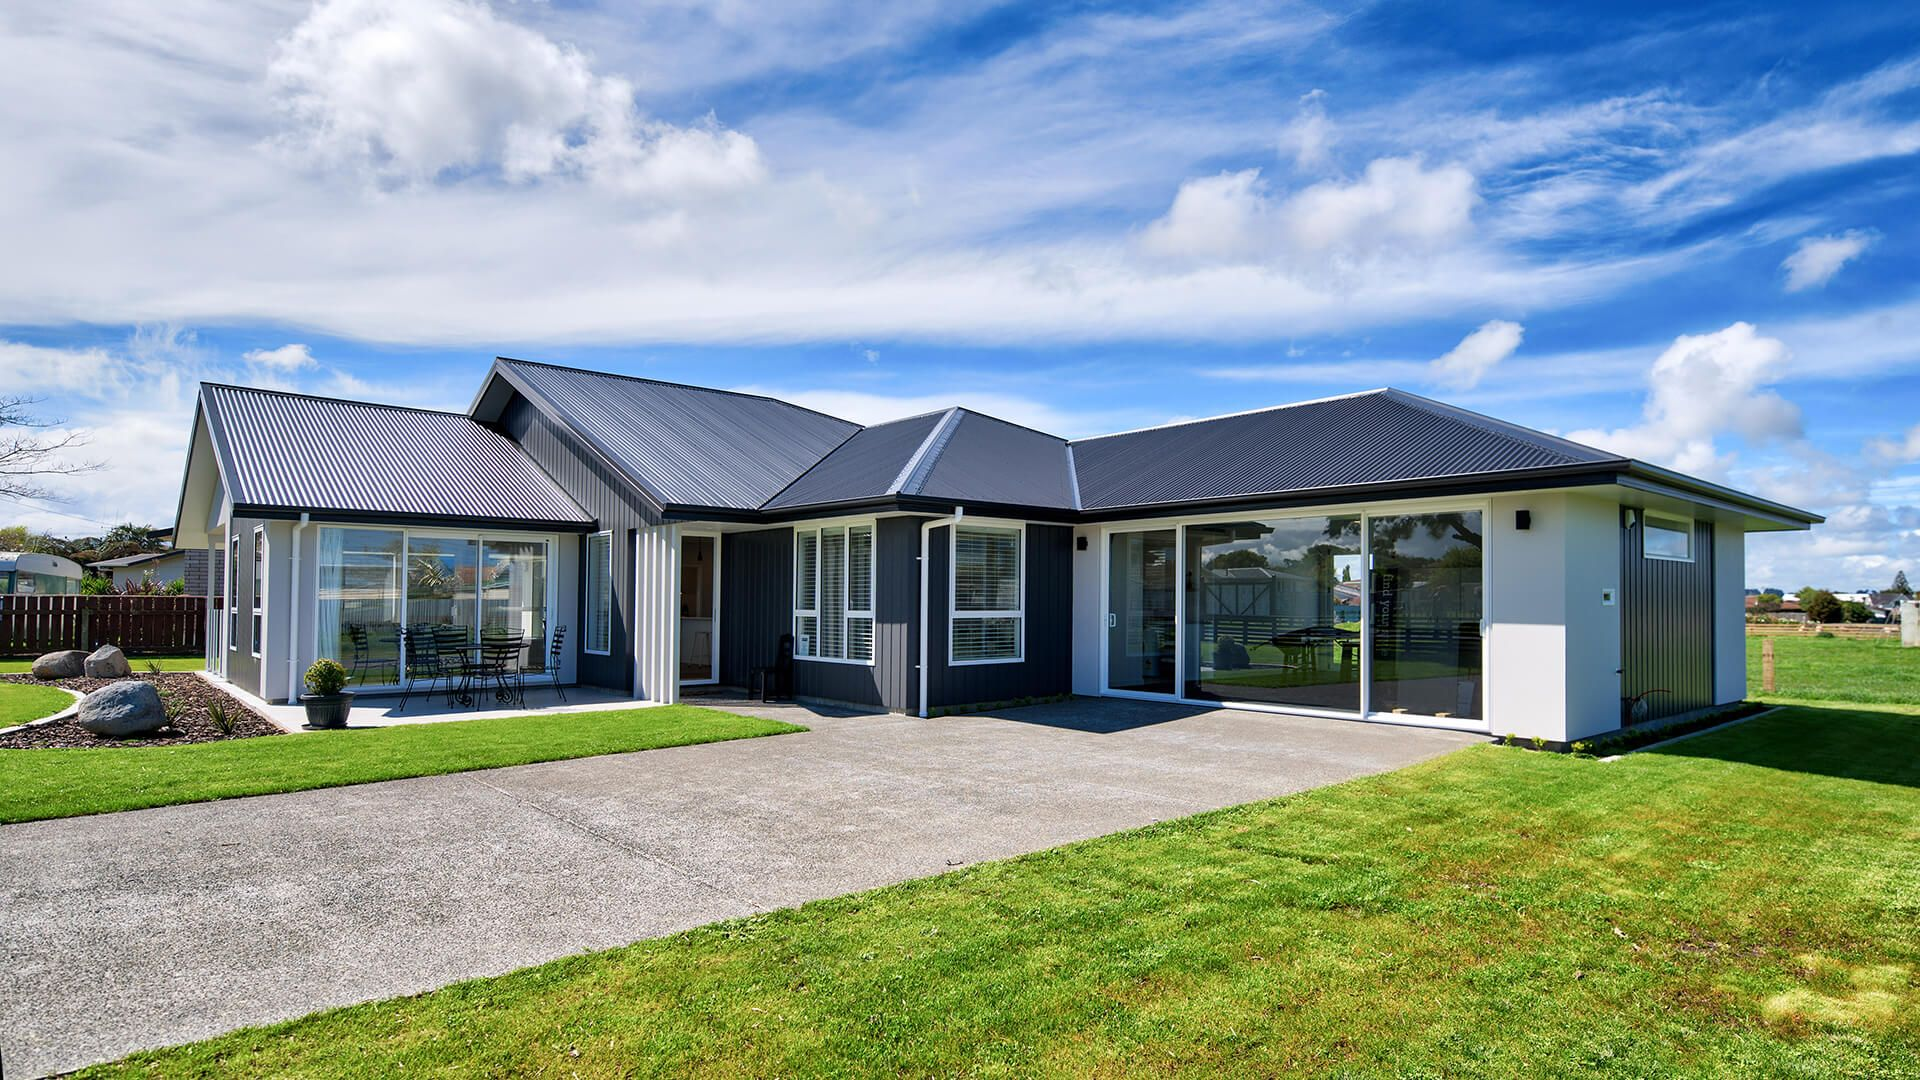 Address 31 Sussex Road Springvale Wanganui Phone 0064 6 343 5007 With Images Display Homes Show Home Local Builders